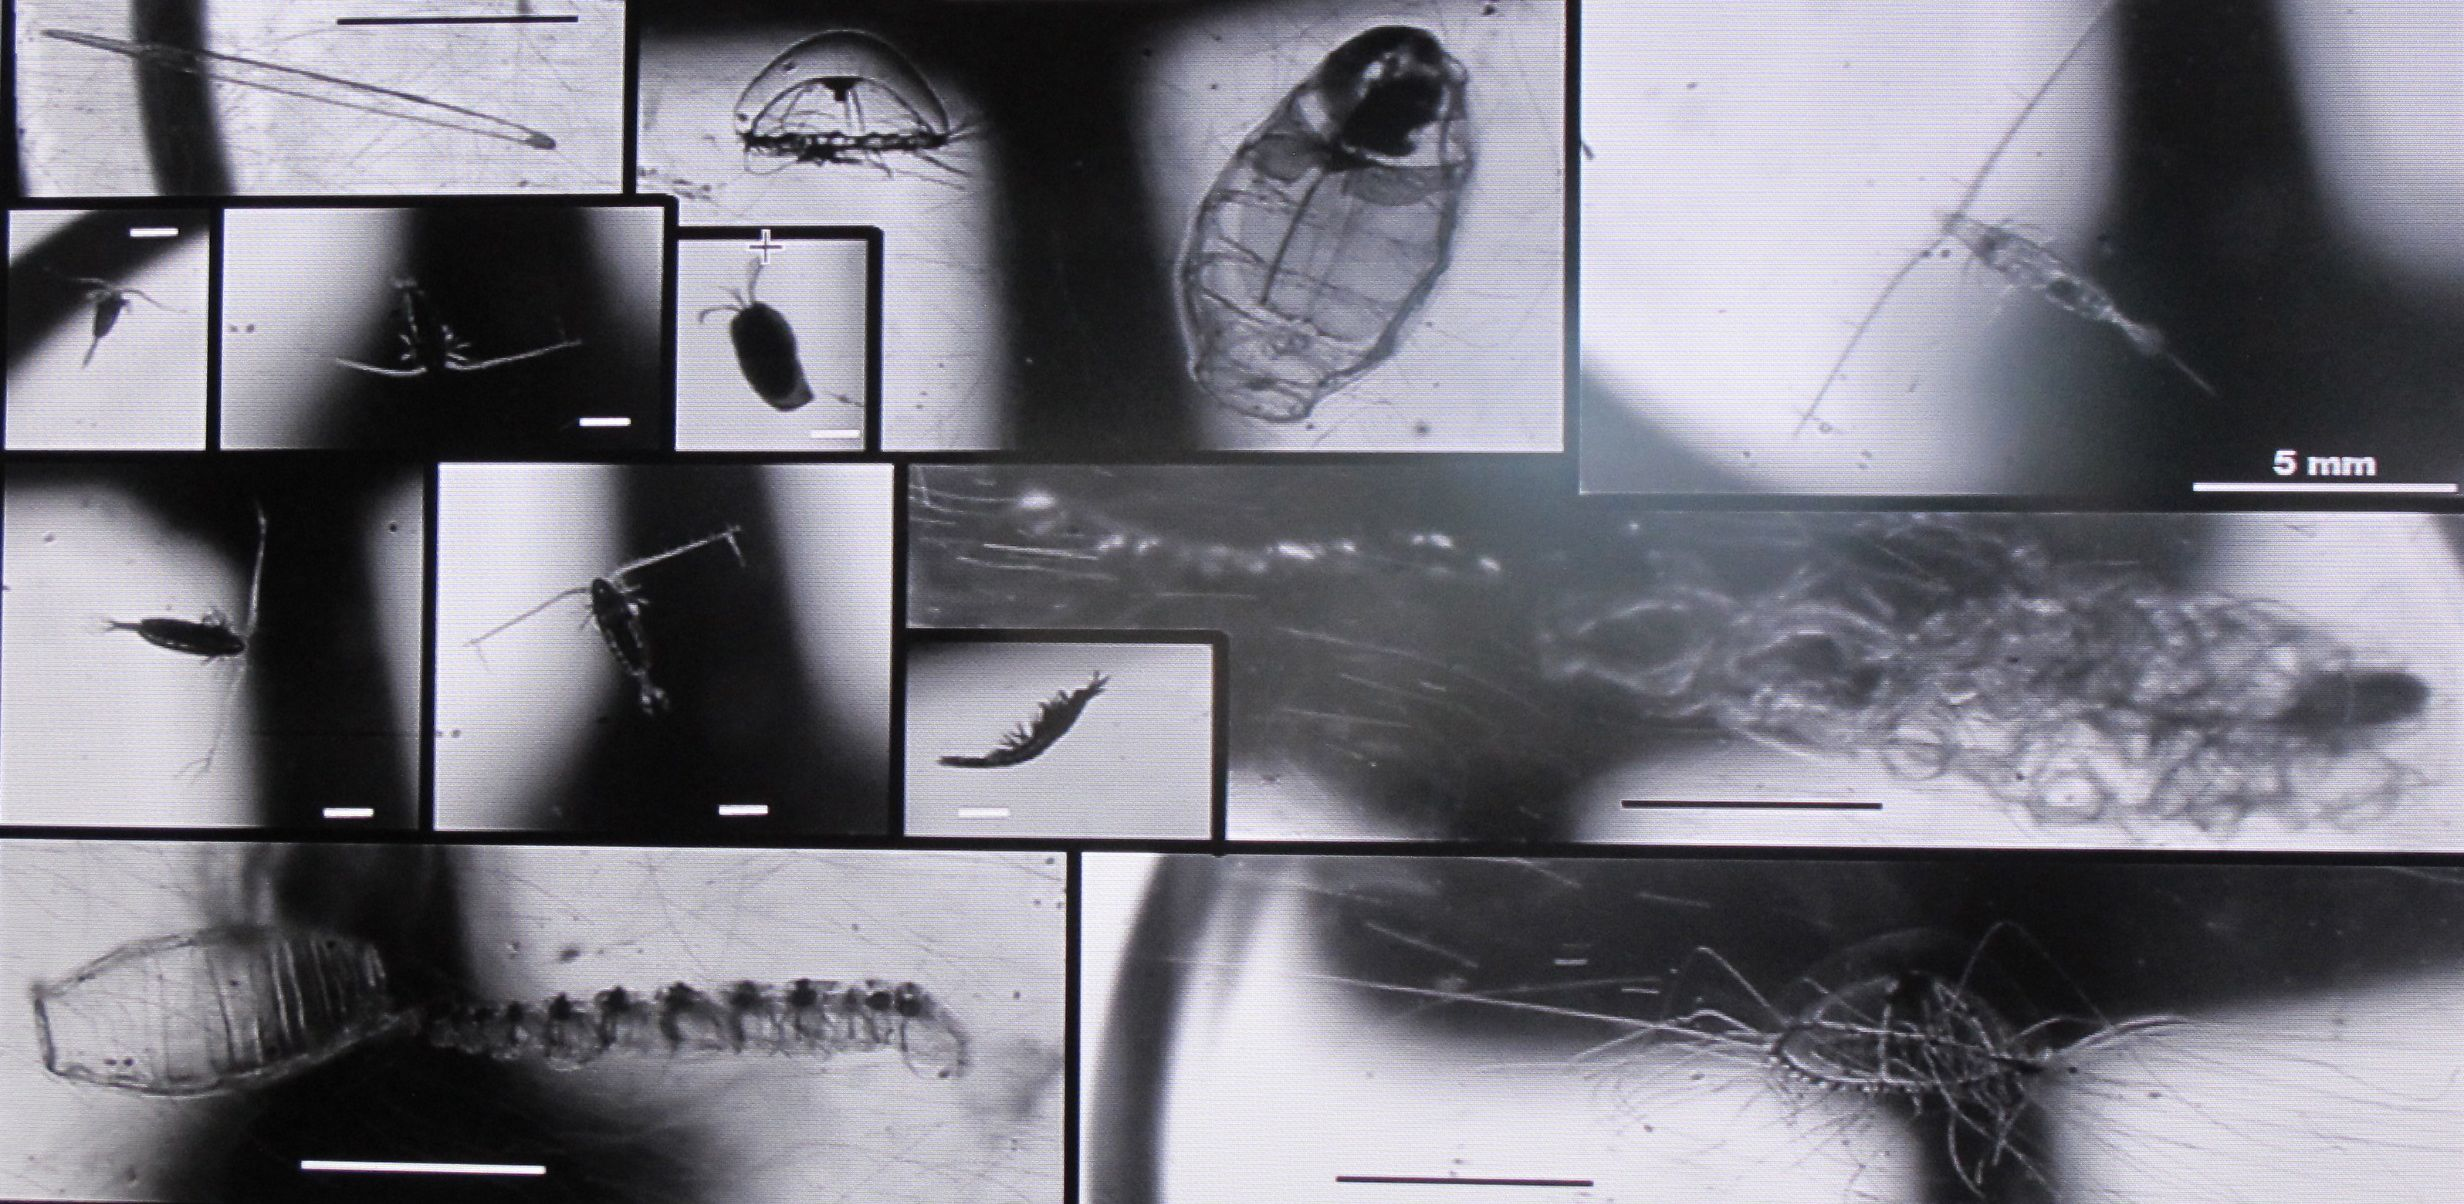 Pioneering research oceanographer Jules Jaffe of the Scripps Institution of Oceanography has invented all sorts of devices for studying the seas, including cameras that photograph the most minute life forms. This is a picture of  some of Jules's extraordinary zooplankton photos.  Jules helped design the optical system used to locate the Titanic.